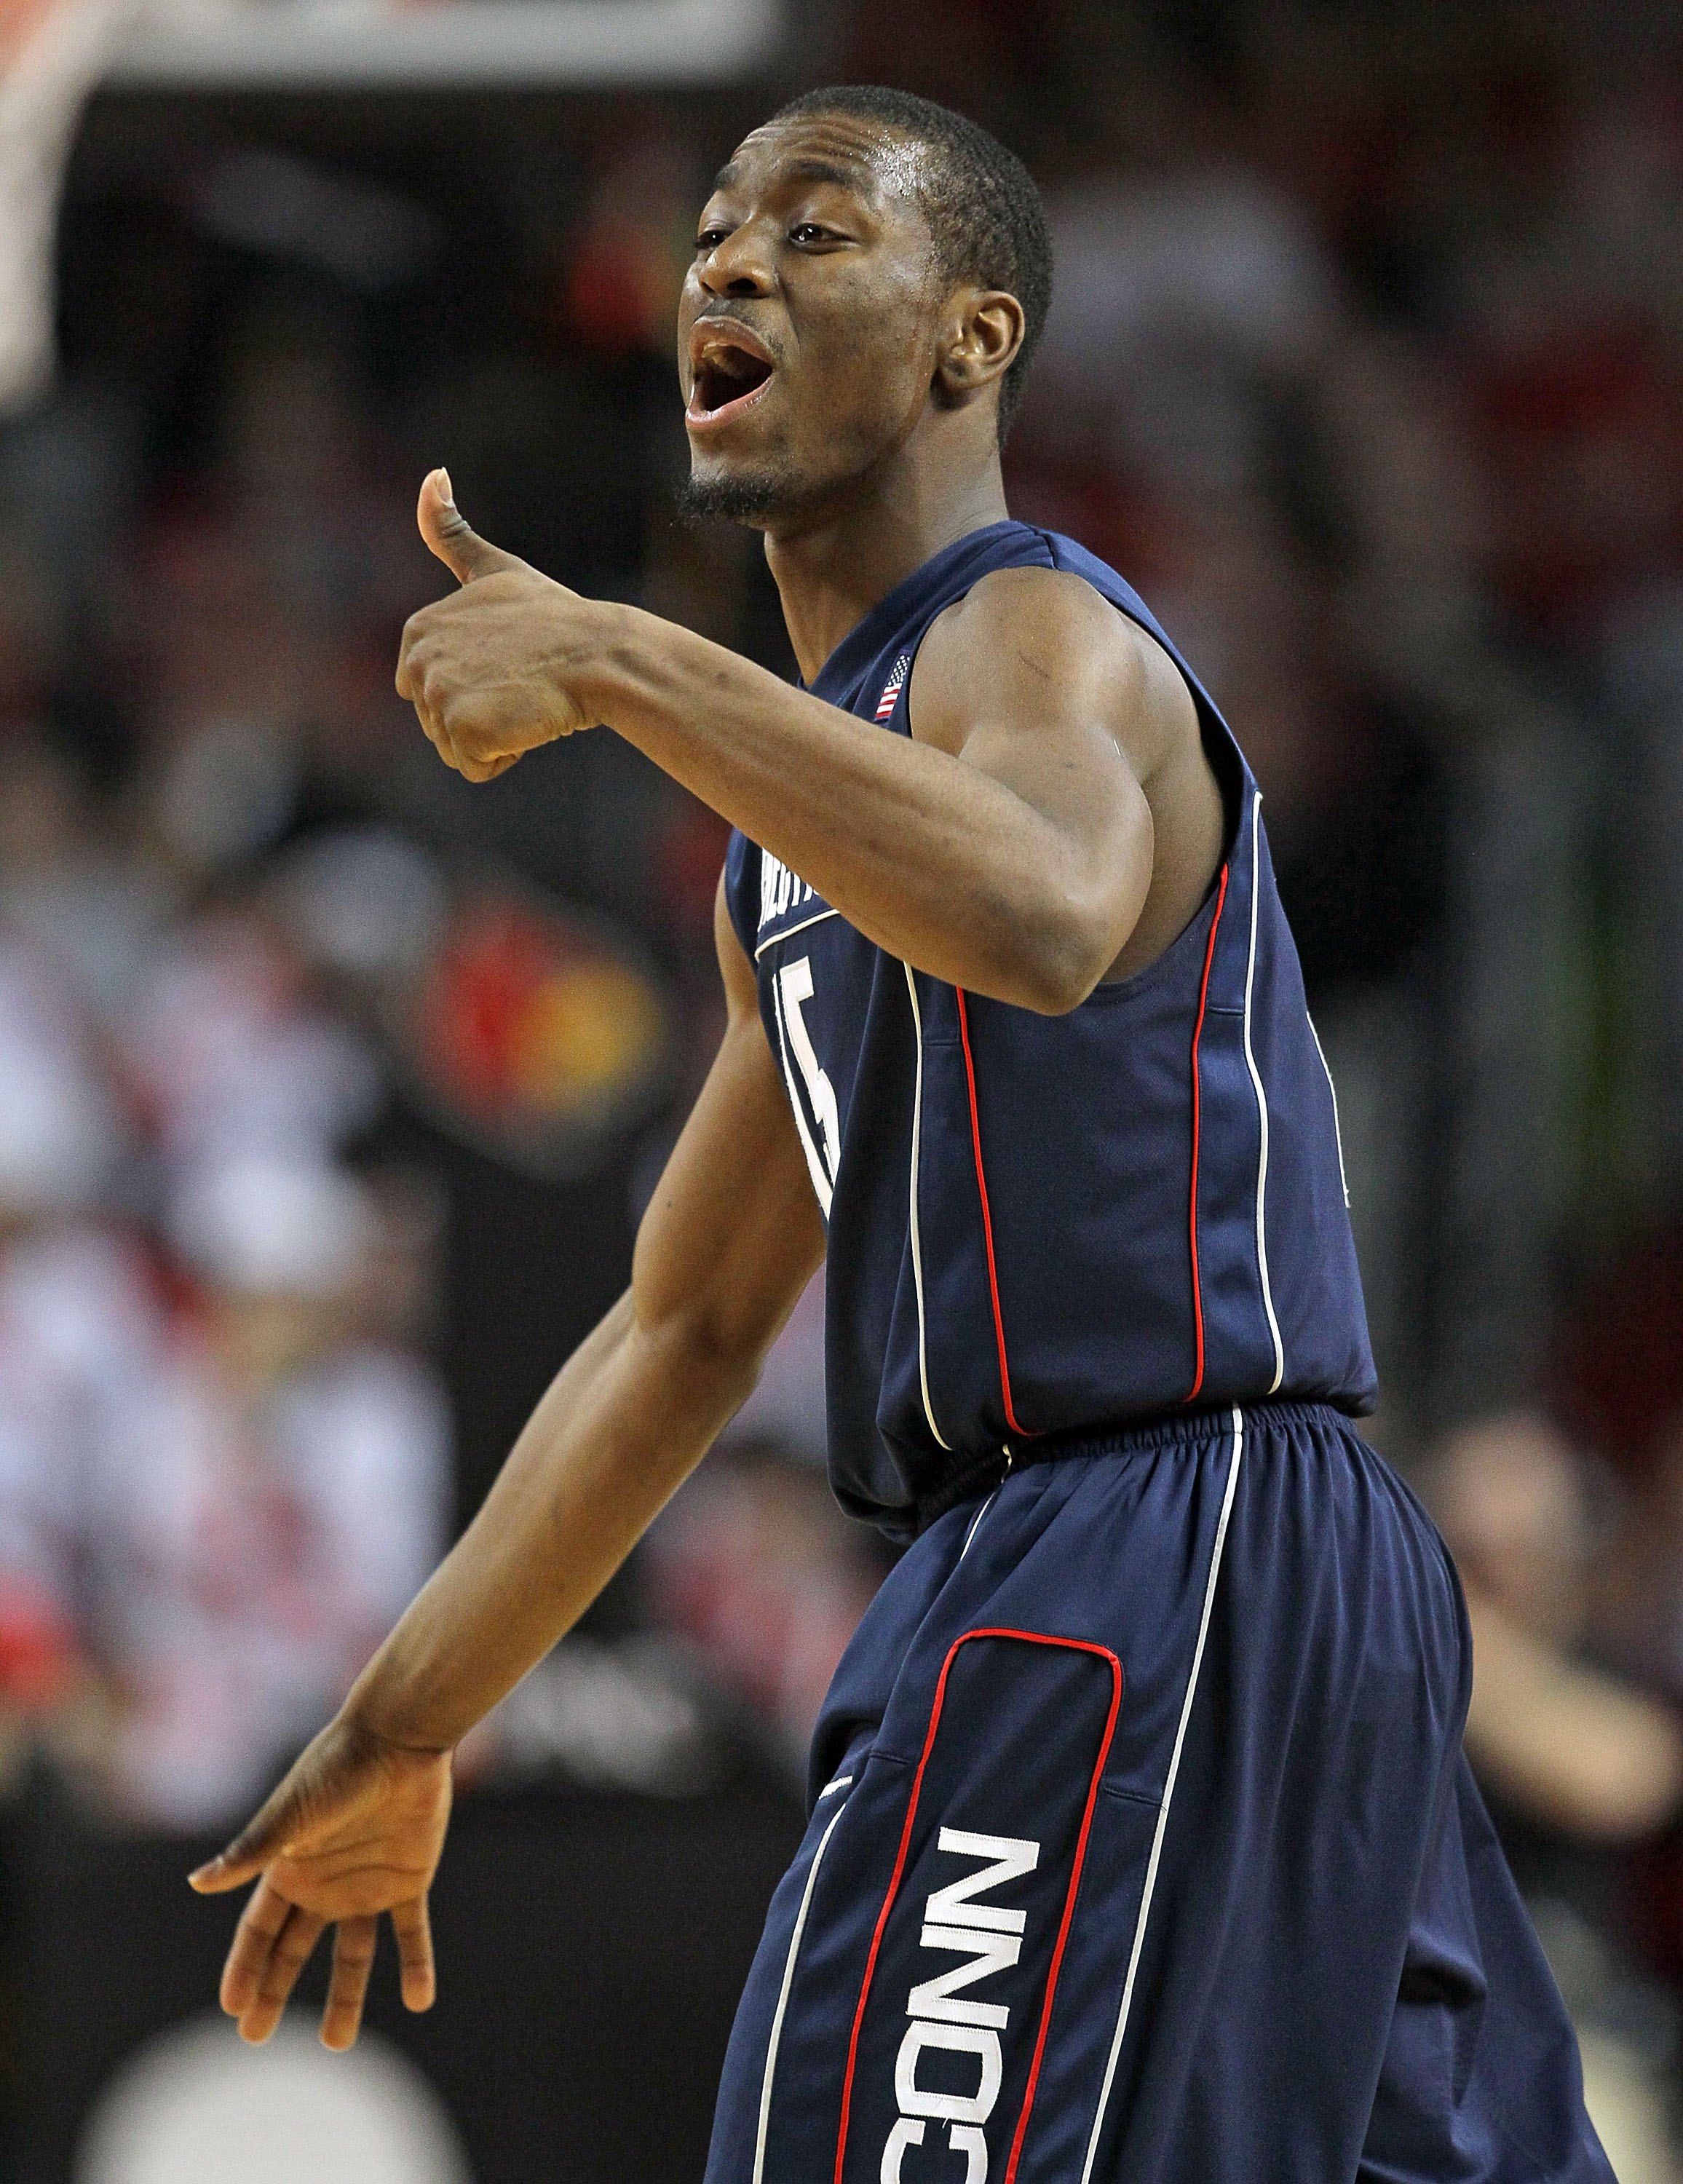 LOUISVILLE, KY - FEBRUARY 01:  Kemba Walker #15 of the Connecticut Huskies reacts during the Big East Conference game against the Louisville Cardinals on February 1, 2010 at Freedom Hall in Louisville, Kentucky.  (Photo by Andy Lyons/Getty Images)